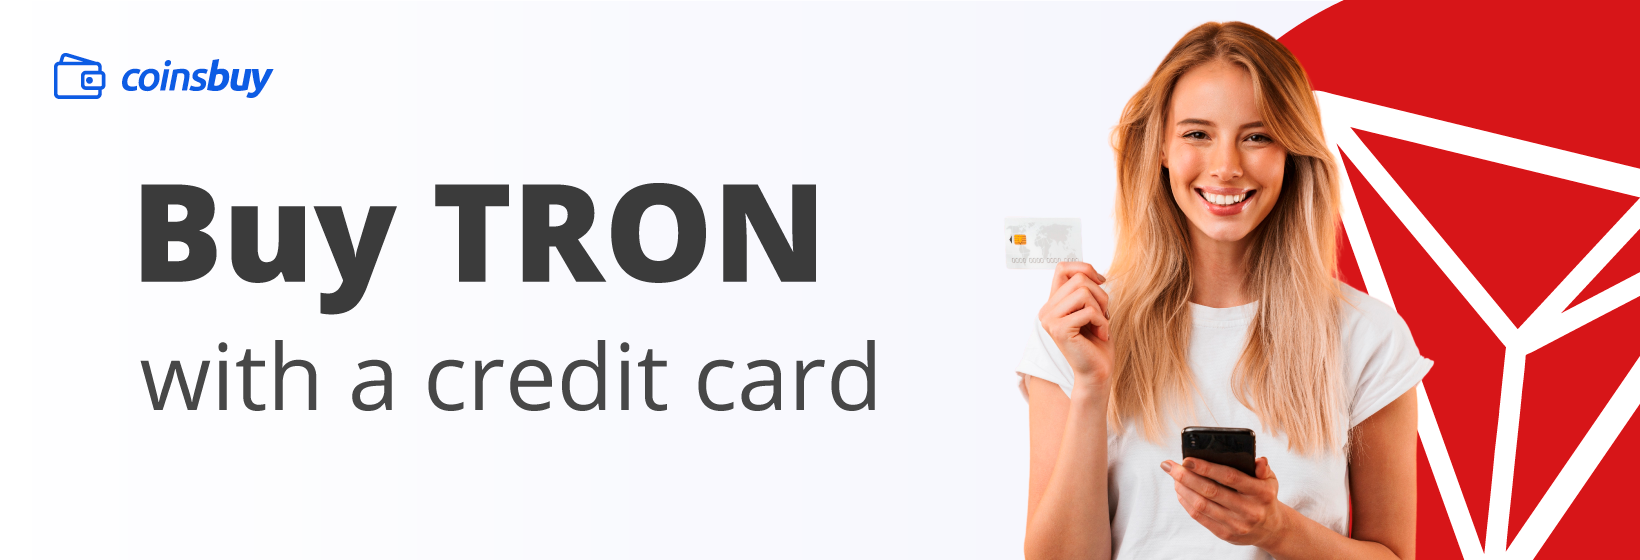 Buy Tron with credit card